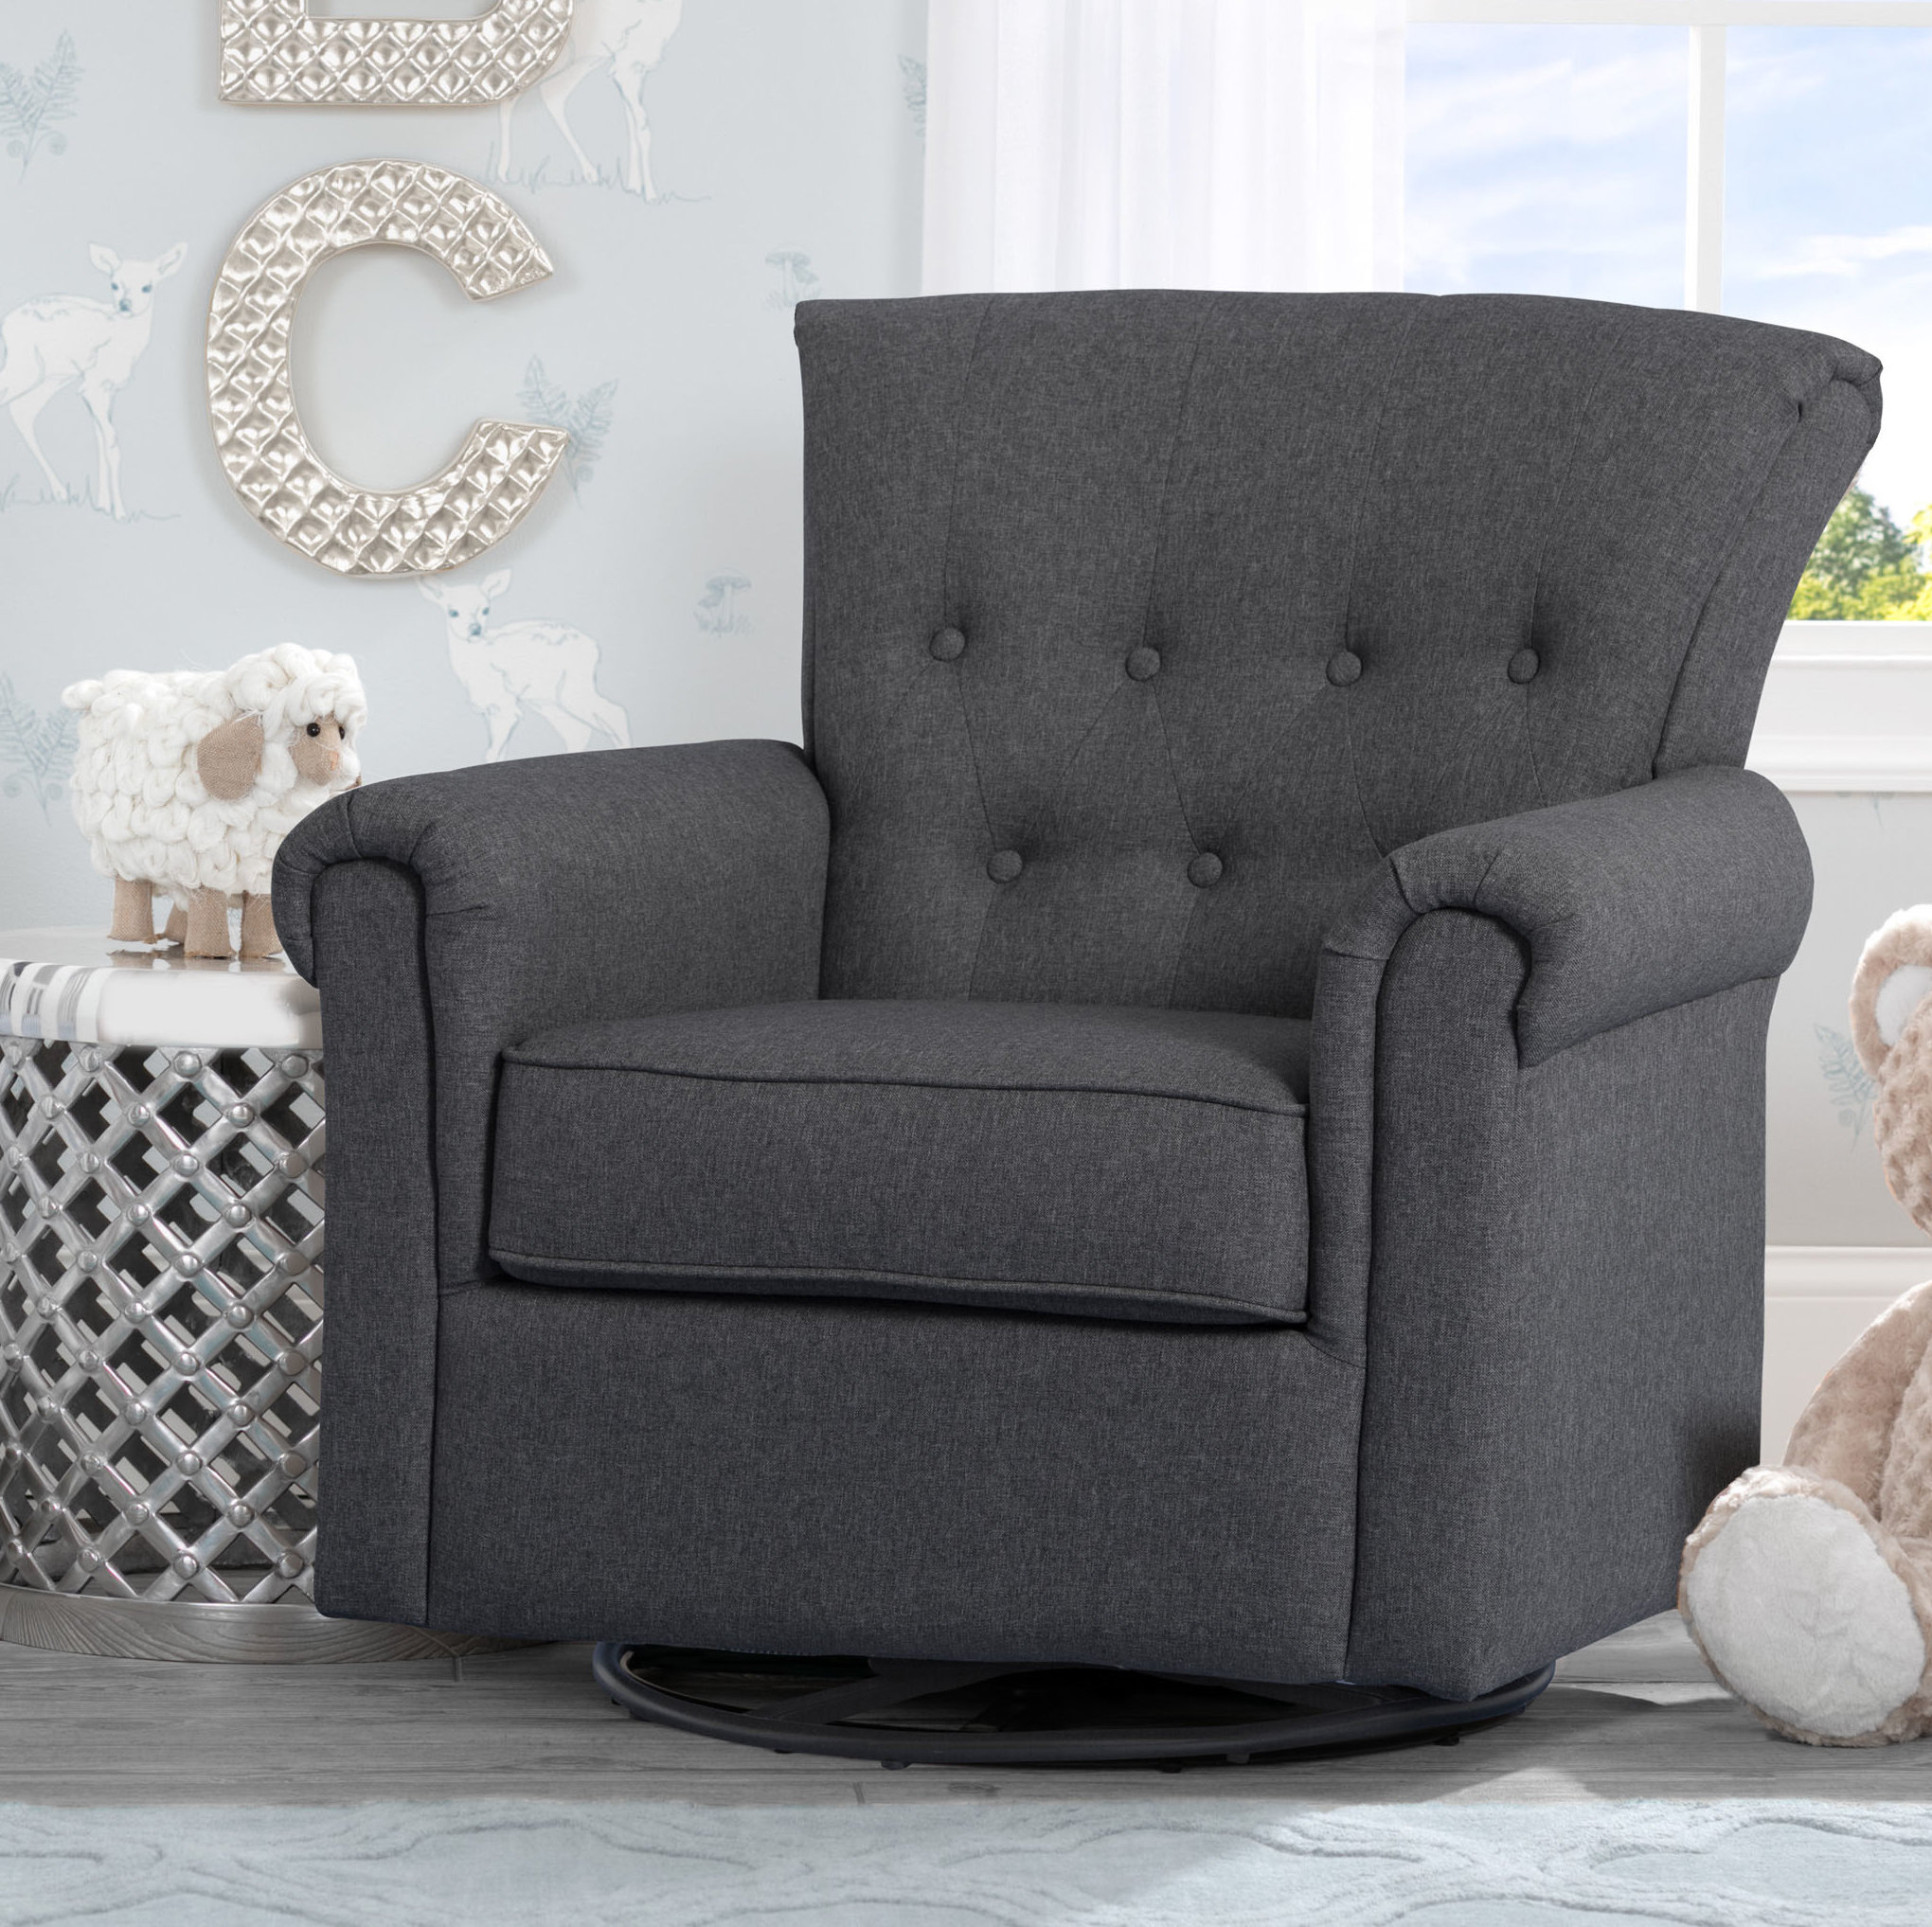 Delta Children Harper Nursery Swivel Glider & Reviews | Wayfair Regarding Dale Iii Polyurethane Swivel Glider Recliners (View 5 of 25)